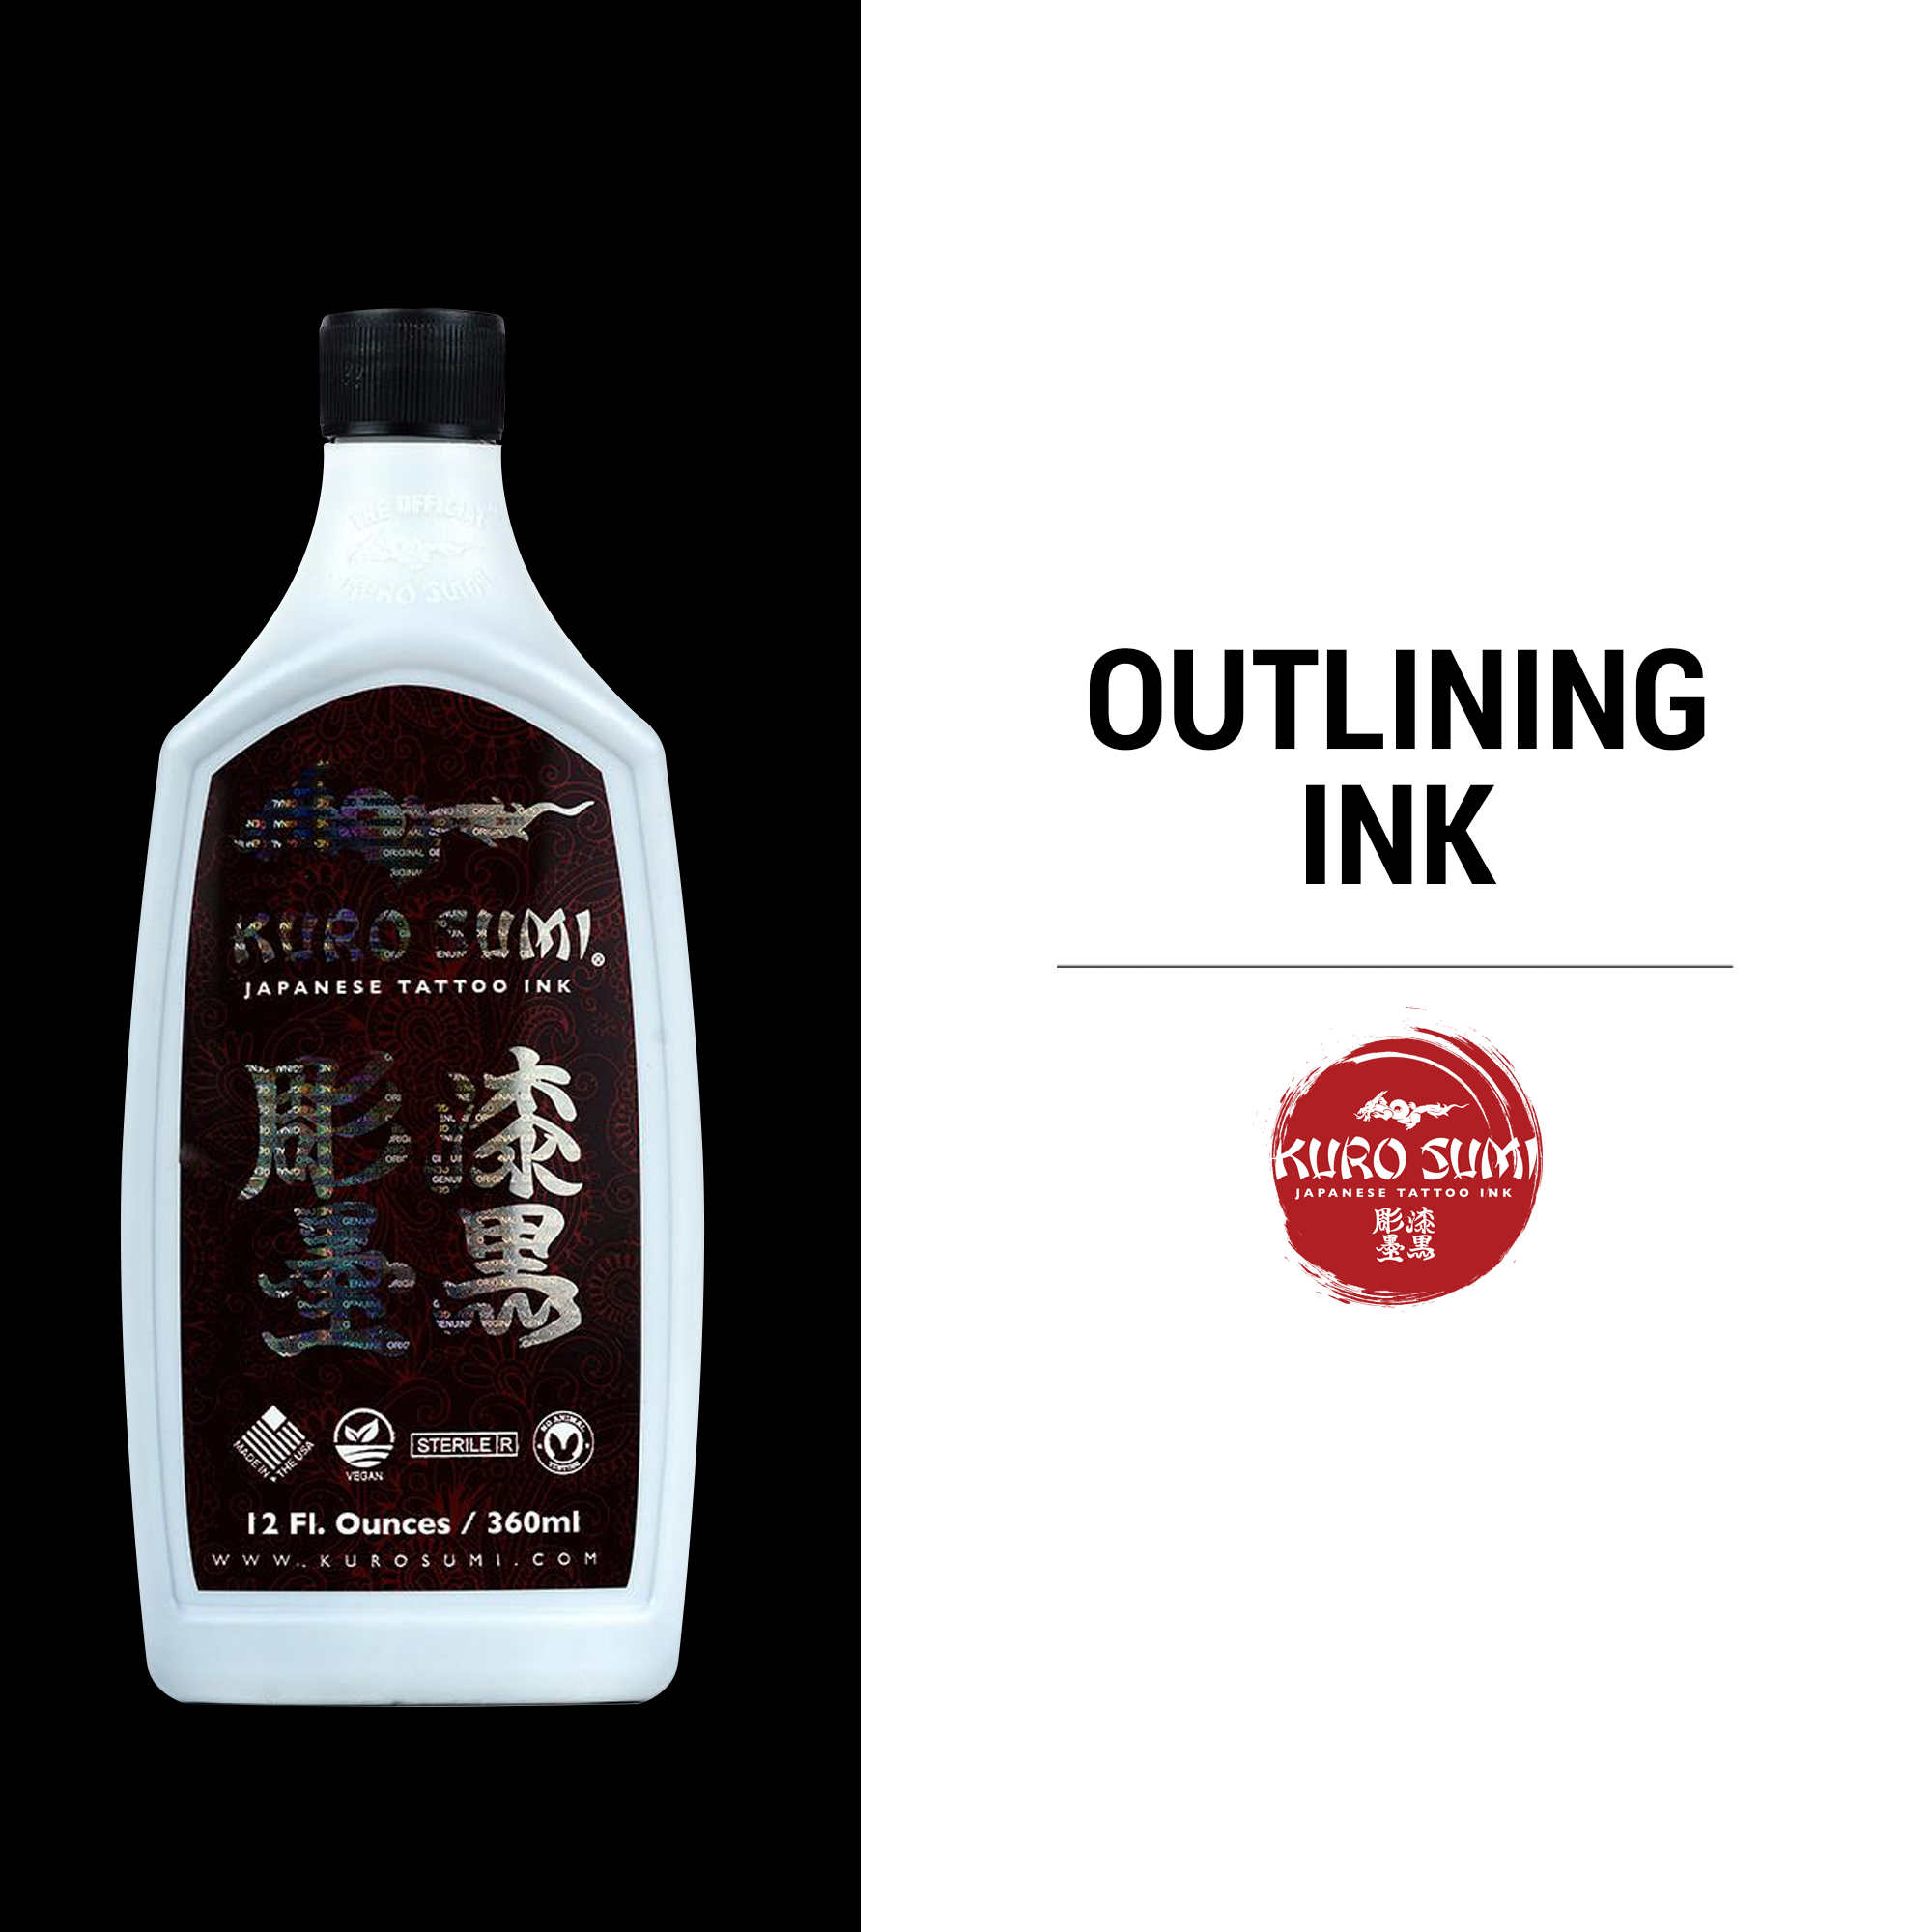 Kuro Sumi Outlining Ink